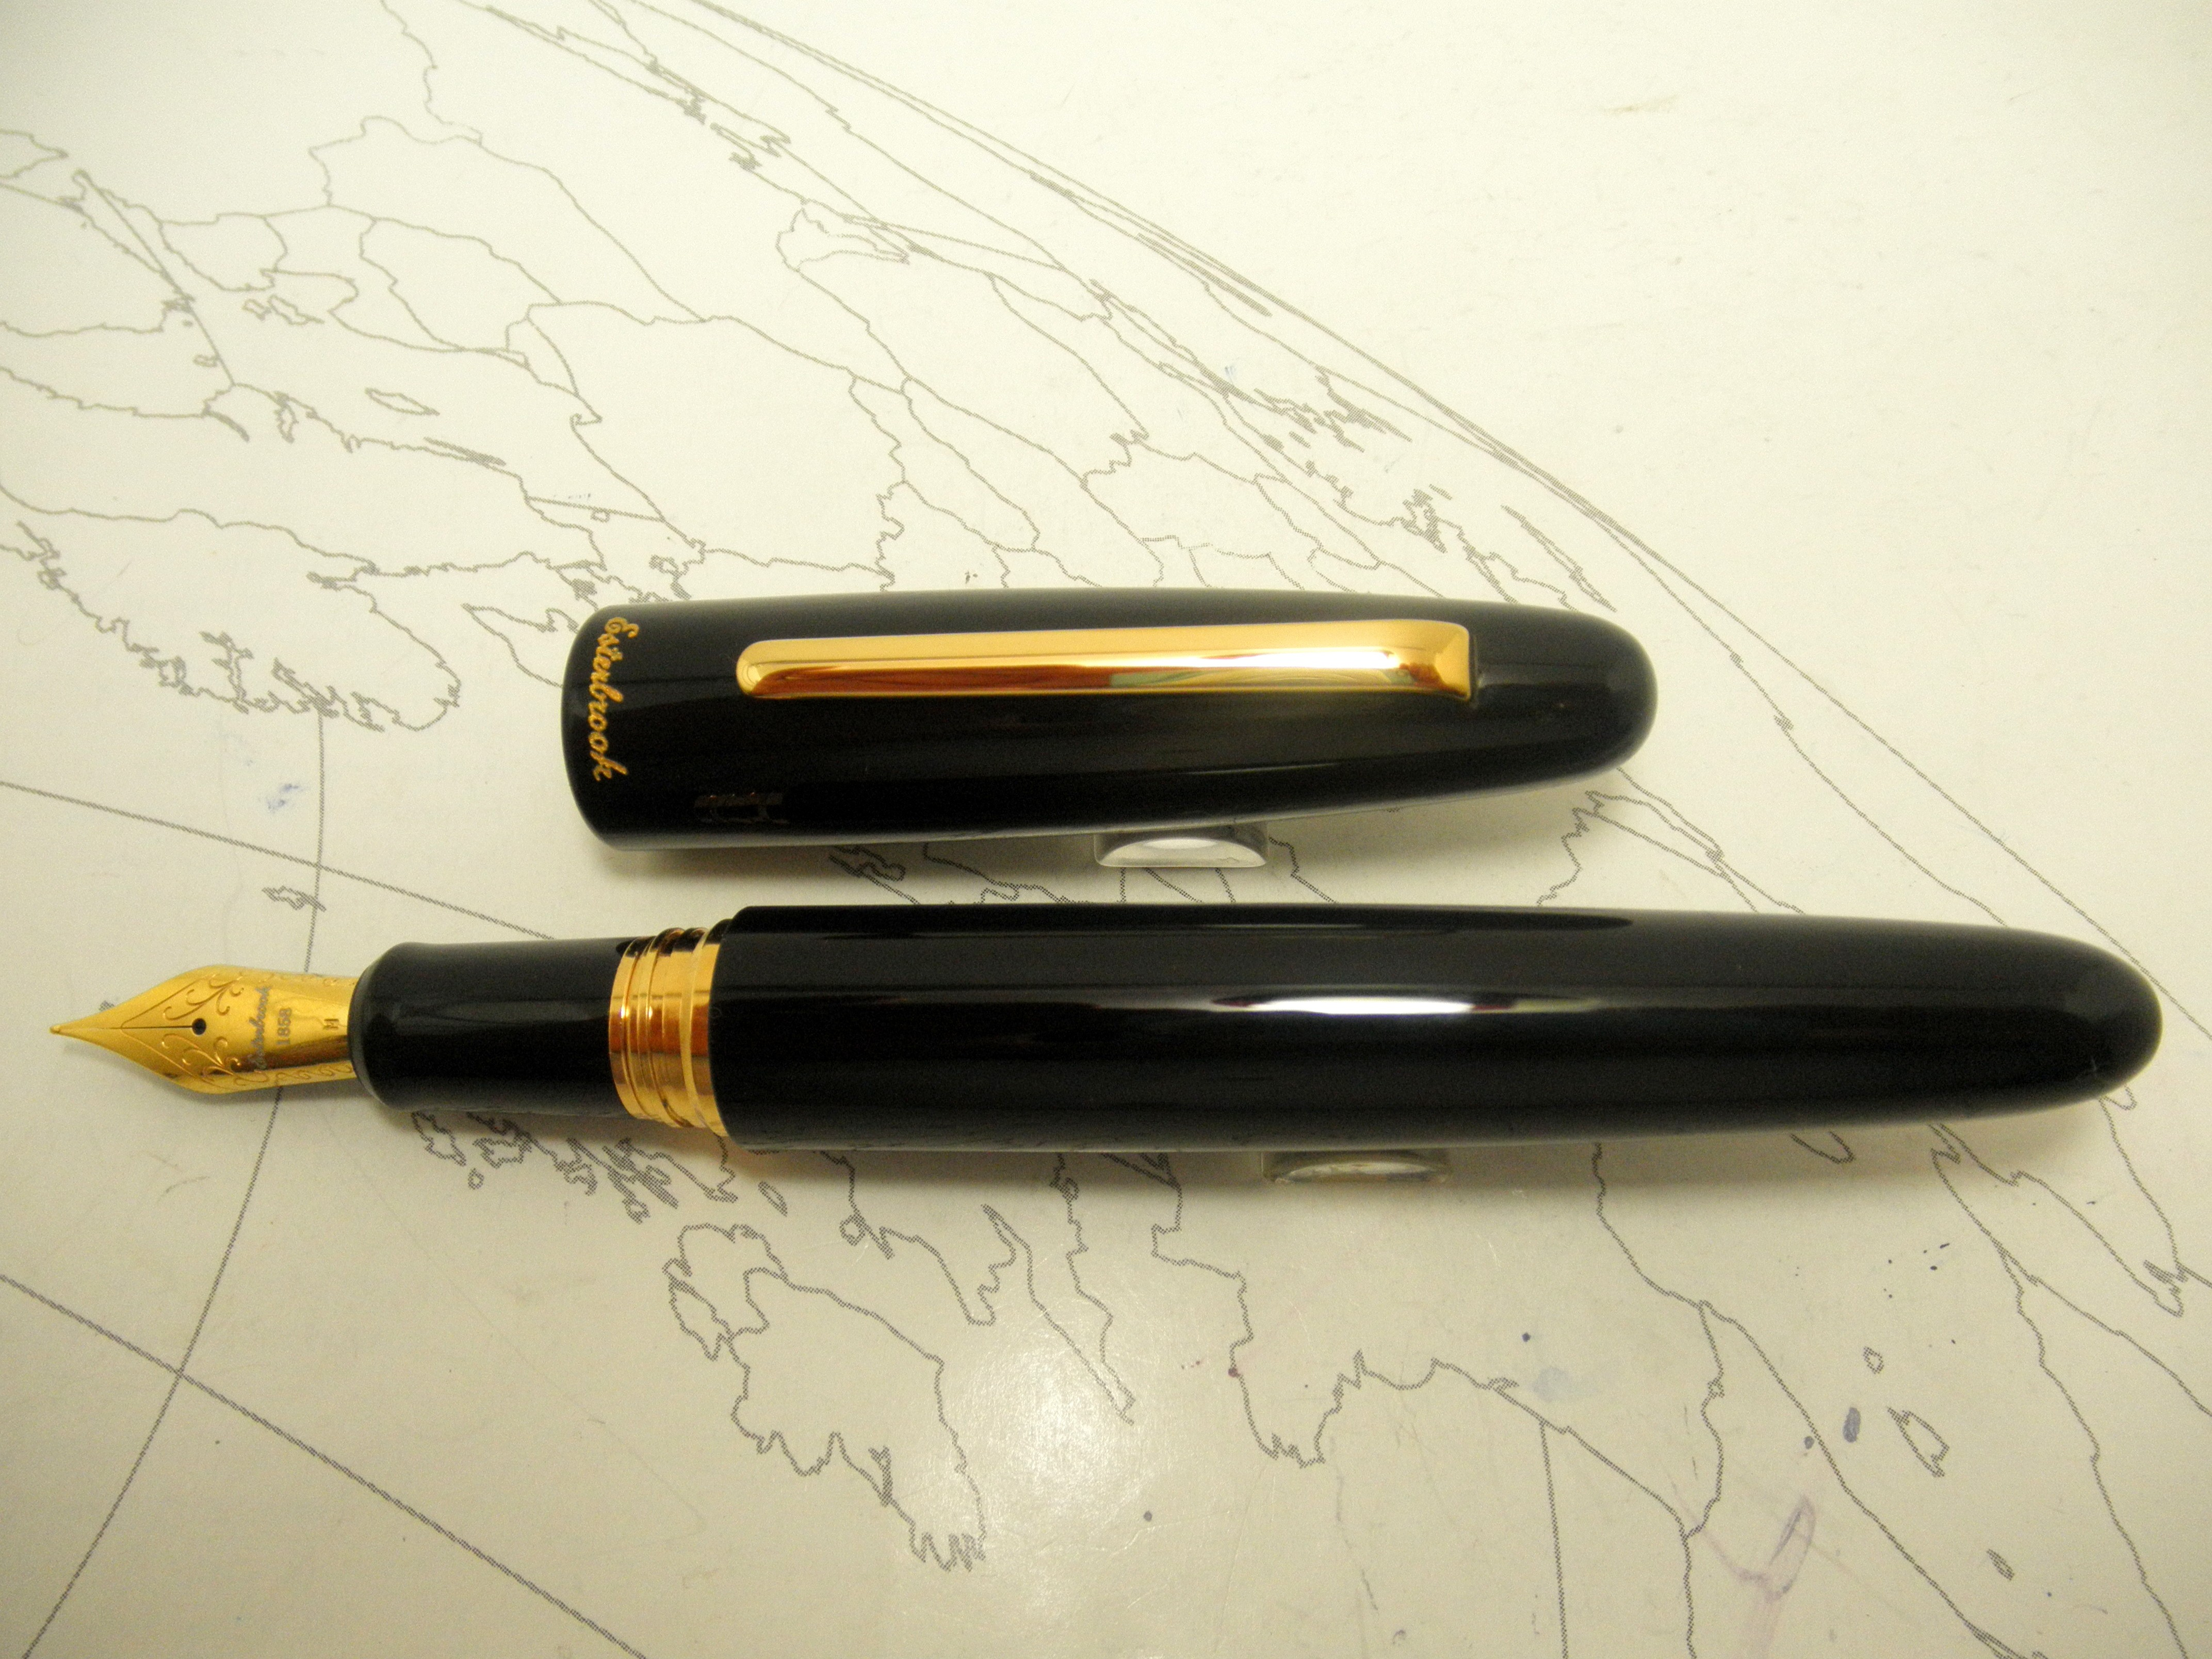 Esterbrook Estie Oversized Fountain Pen Black Gold TrimEsterbrook Estie Oversized Fountain Pen Black Gold Trim